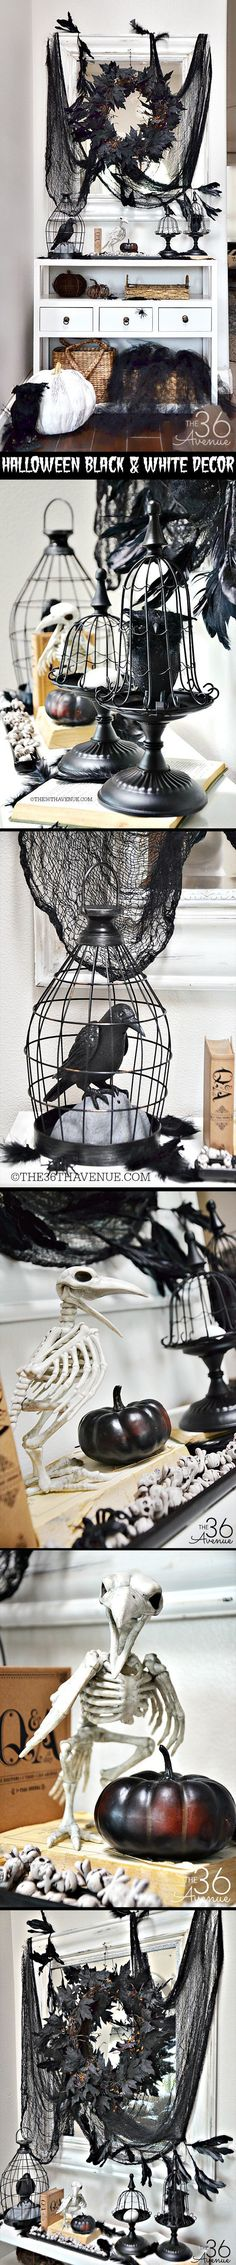 Black and White Entryway Halloween Decor.  The bird cage cloche pedestals are from Michaels.com, animated 'Crow in Cage' is from Target.com, the skeleton raven can be found at spidersoftheweb.com and black, maple leaf wreaths are available at Linens 'n' Things lnt.com. Beware the Birds! Black & White Theme Poe & Hitchcock Halloween Party Decorations & Ideas